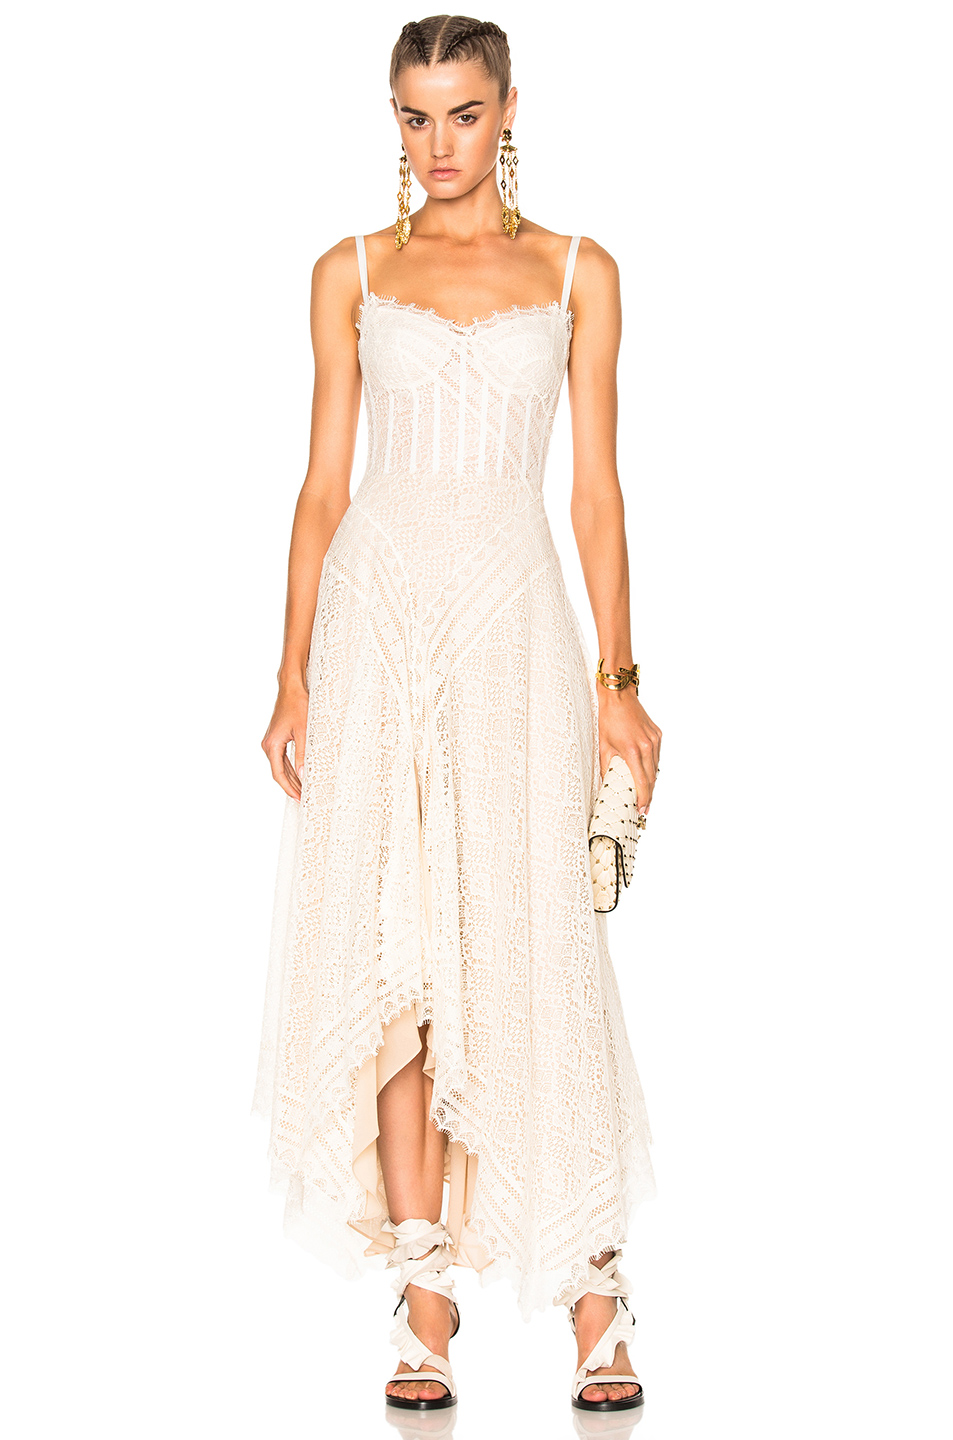 Photo of Alexander McQueen Asymmetrical Lace Dress in Neutrals,White online sales